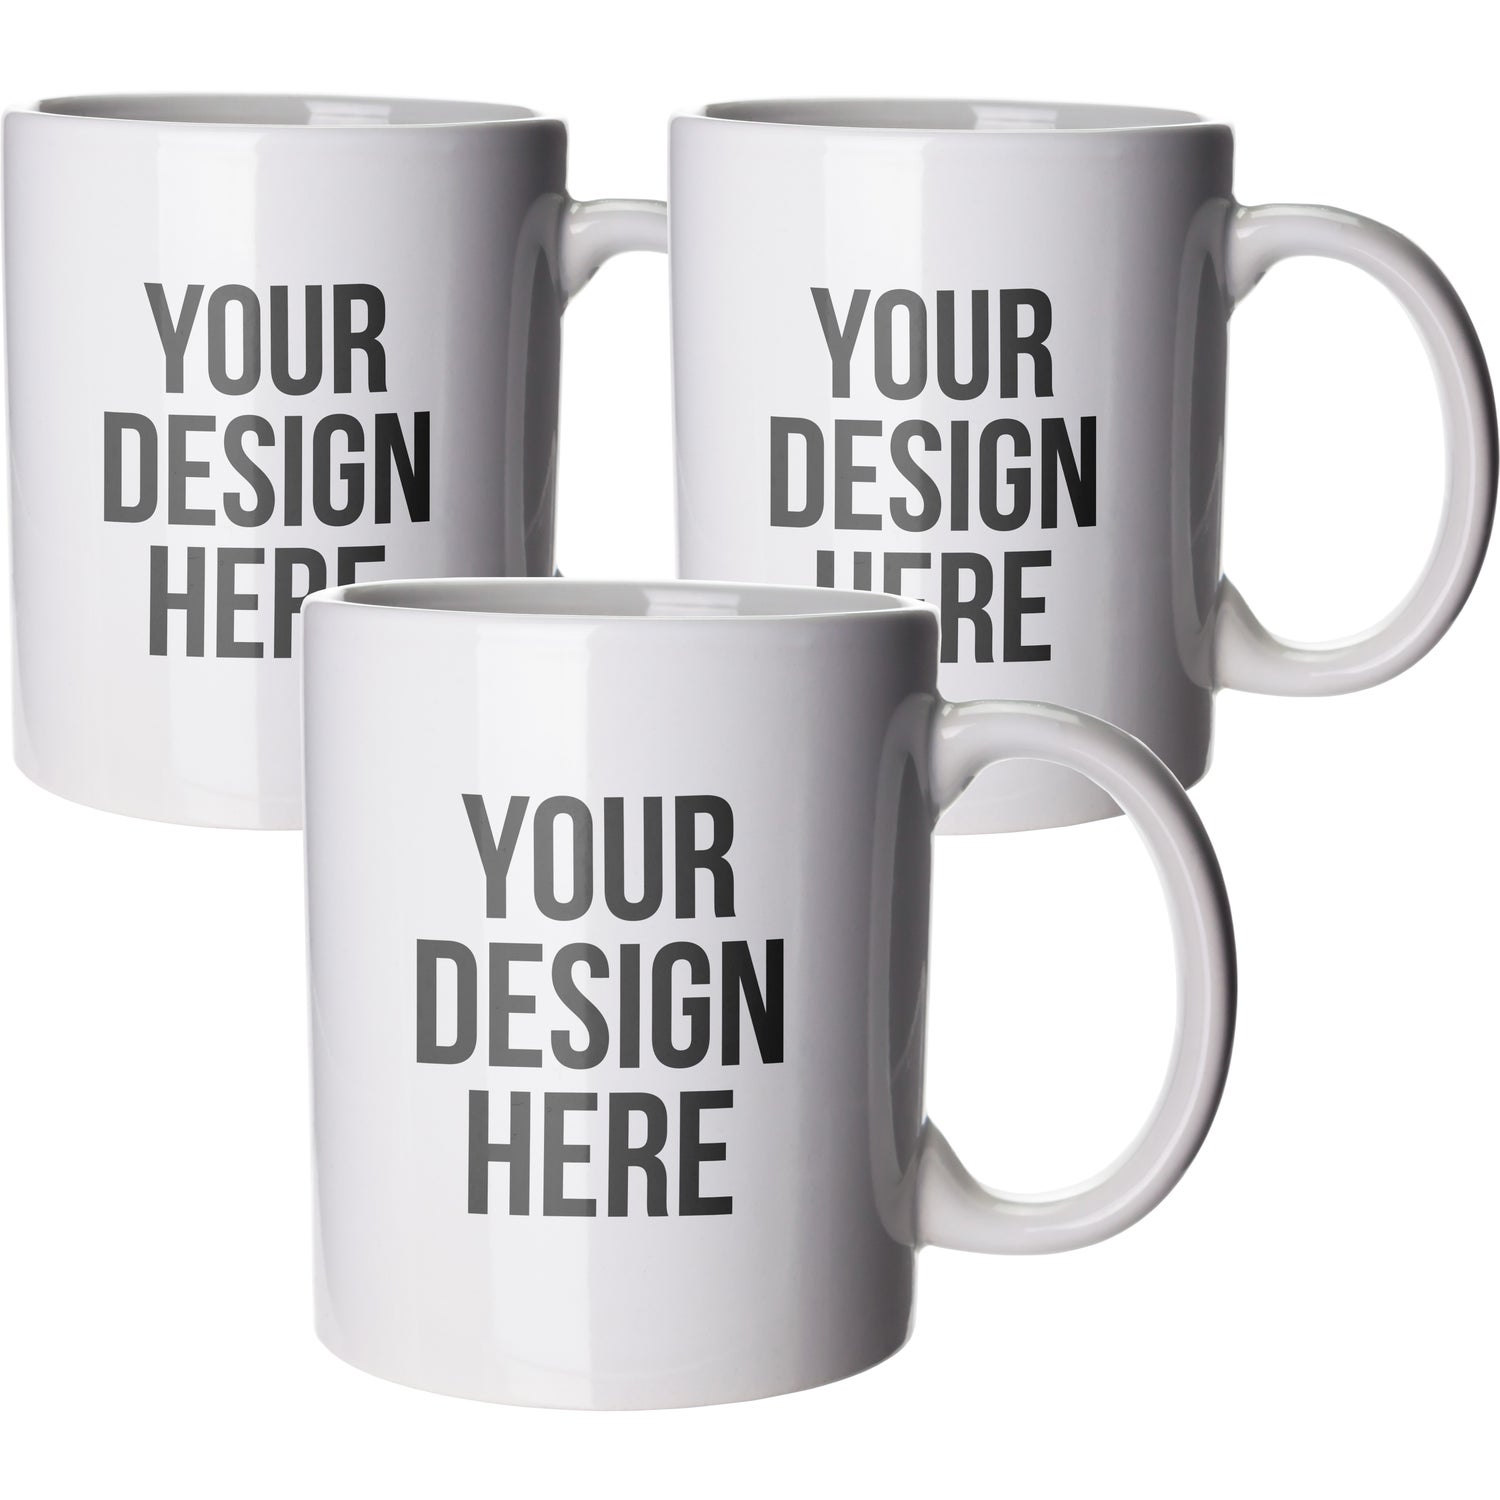 The Office Mugs. White Budget Coffee Mug (11 Oz.) Branded The Office